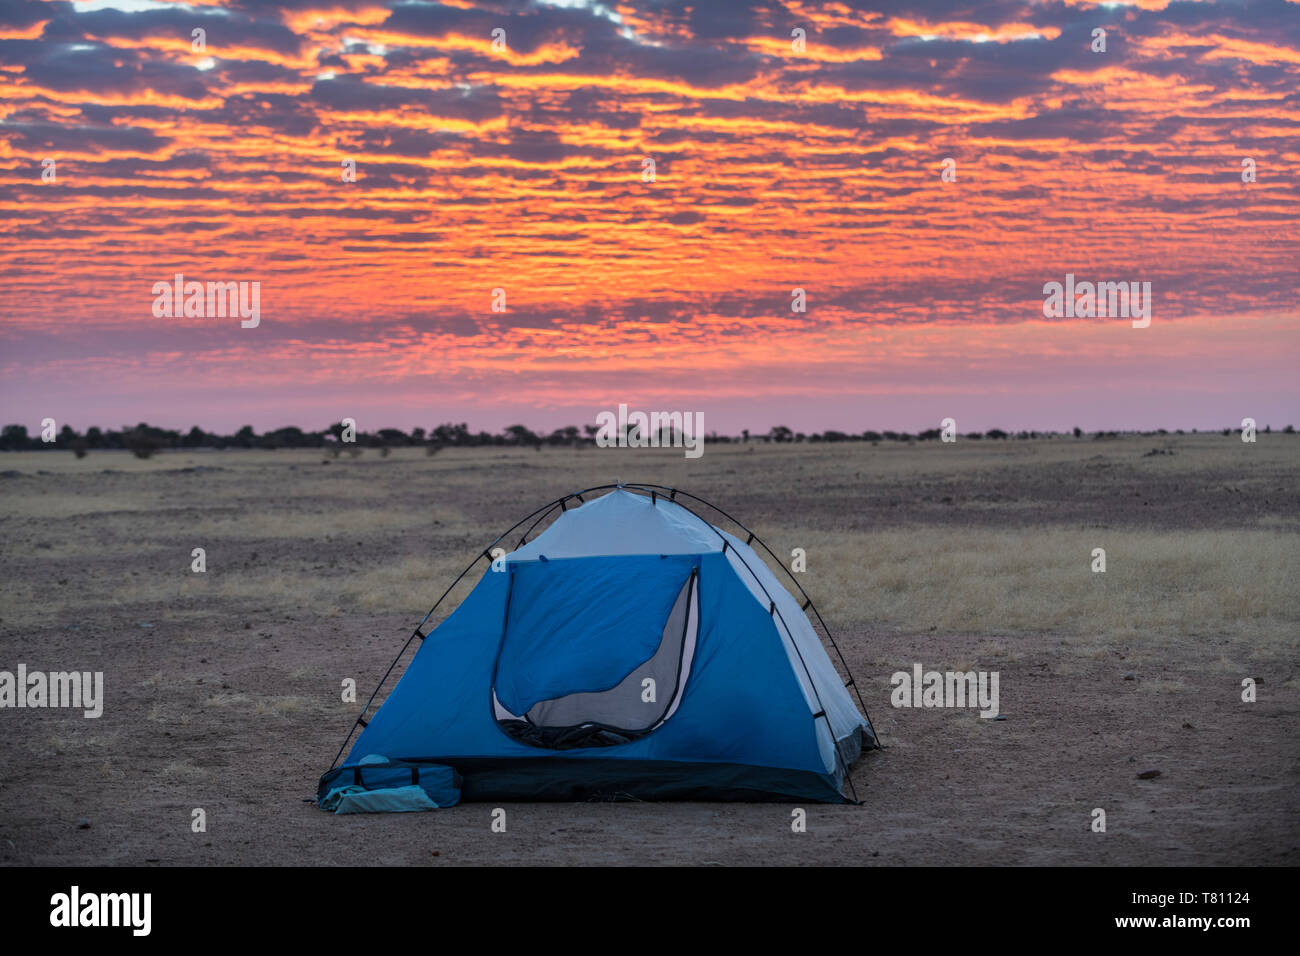 Camping under a dramatic morning sky in the Sahel, Chad, Africa Stock Photo